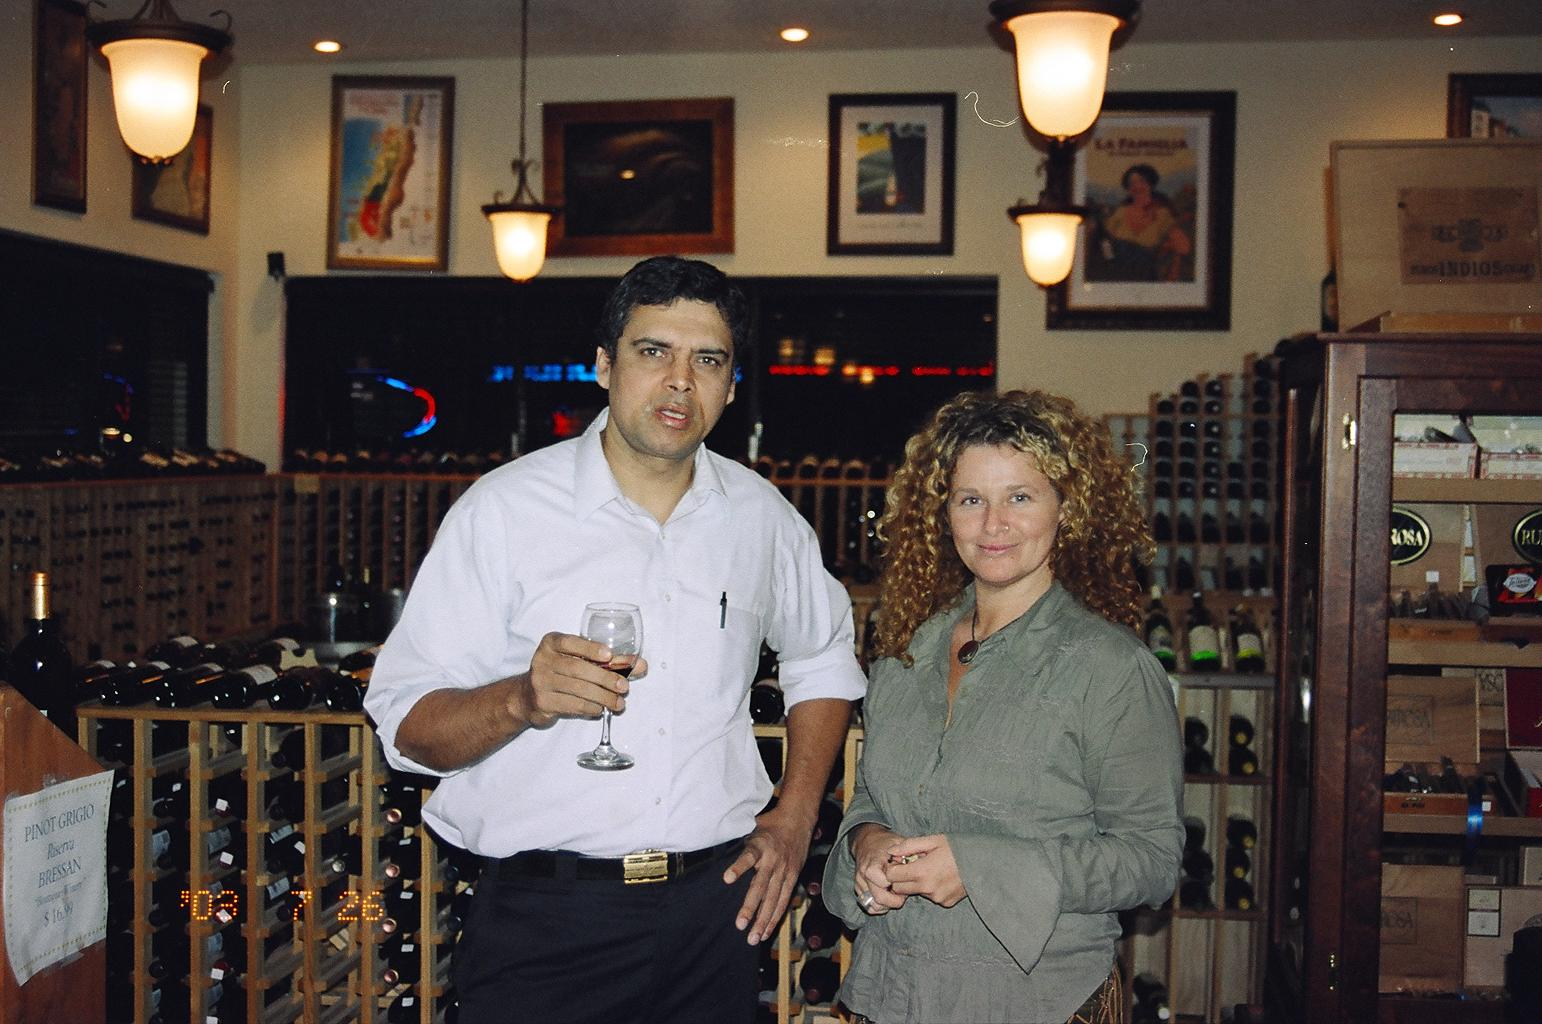 Myself at a wine party with a British friend of mine in 2002